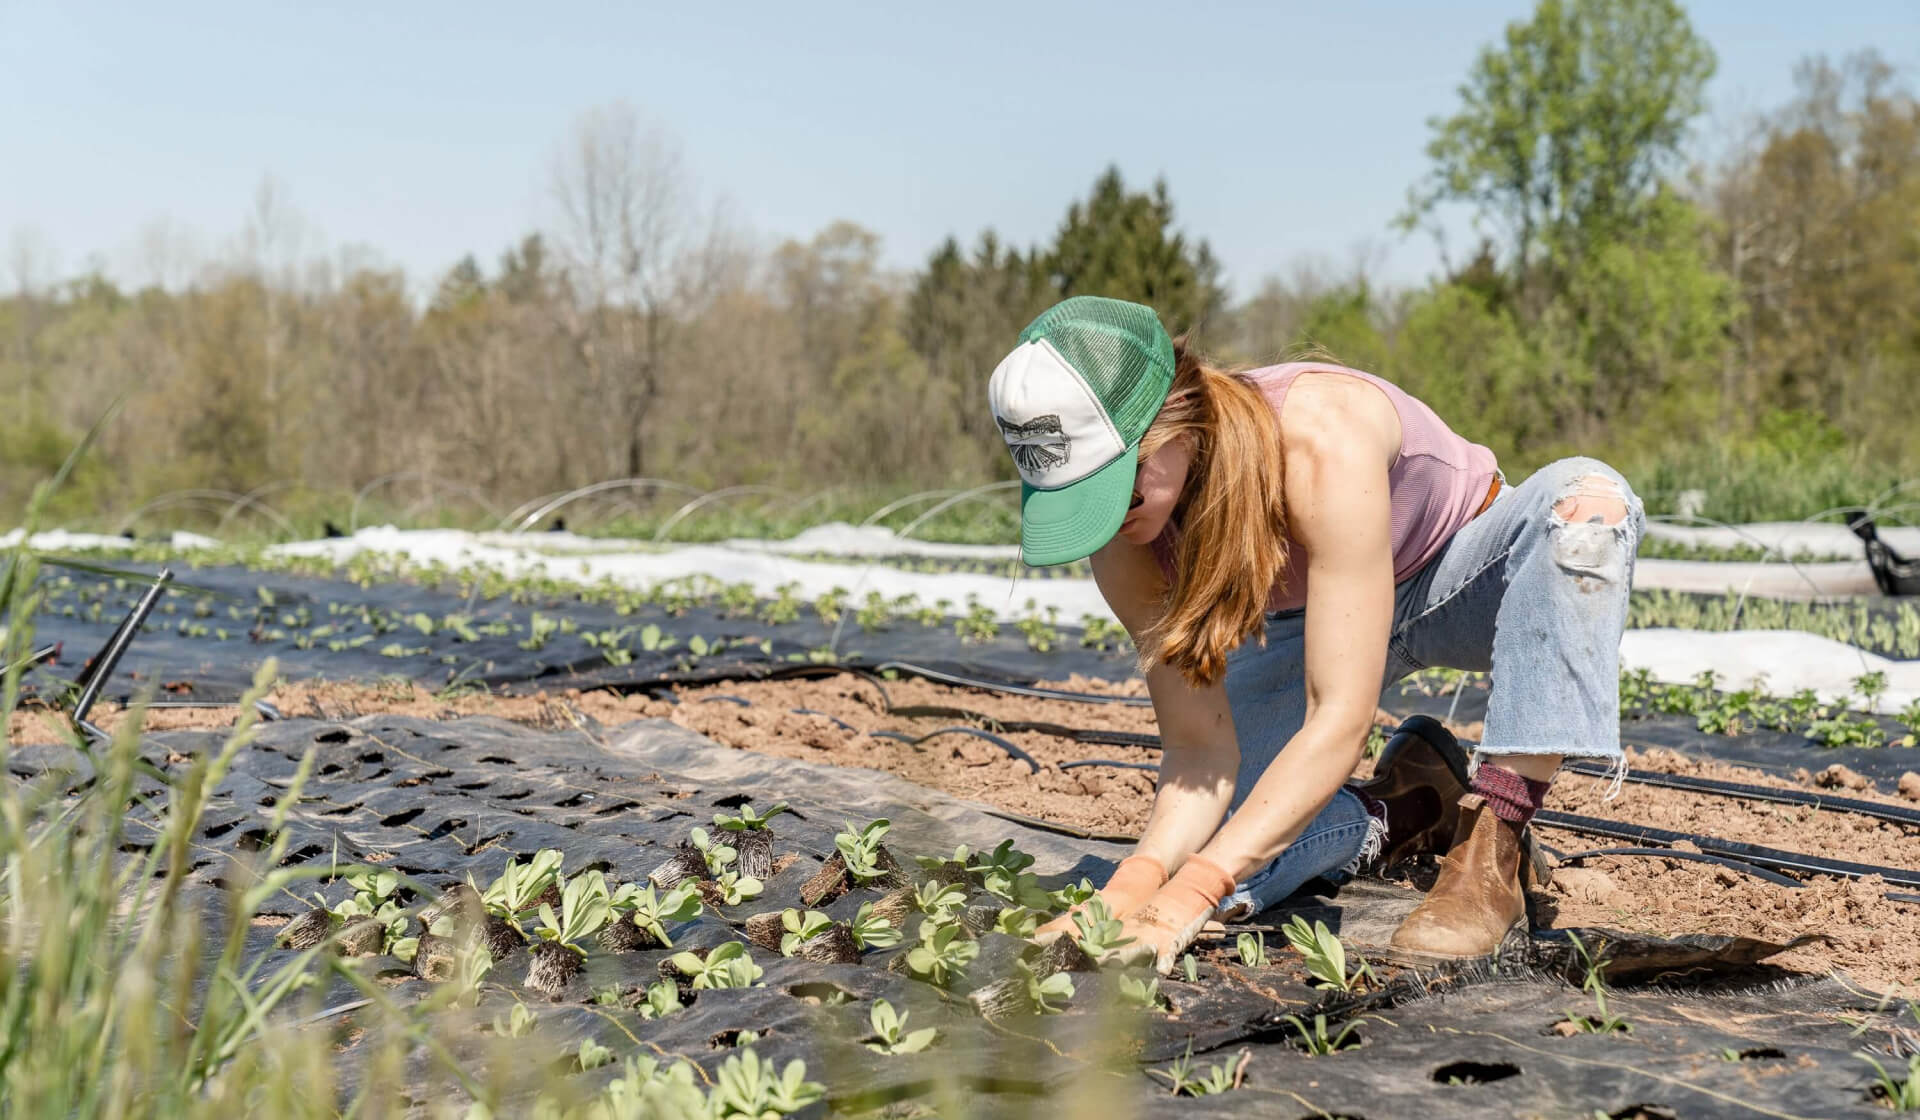 Girl with ripped jeans and a baseball cap kneeling down gardening on a farm